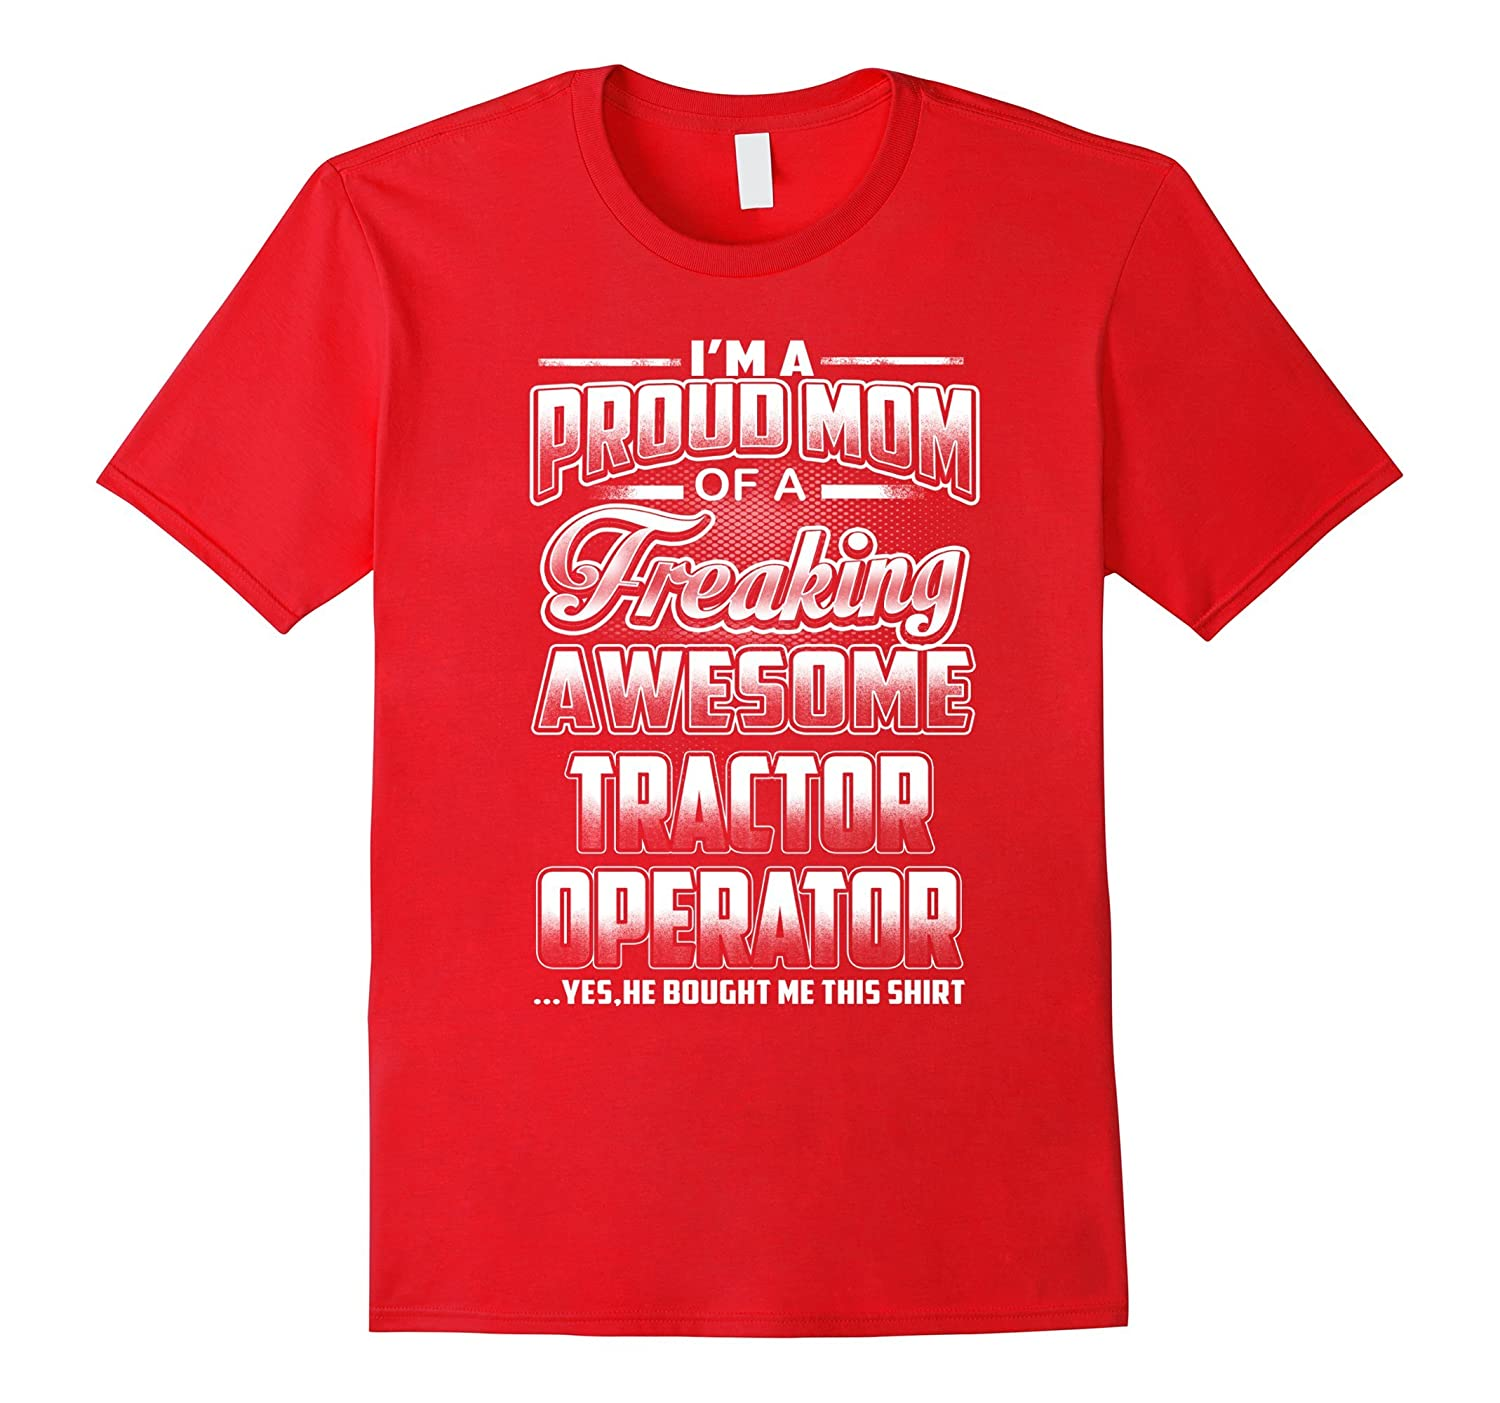 Tractor Operator Mom T-shirt-CL